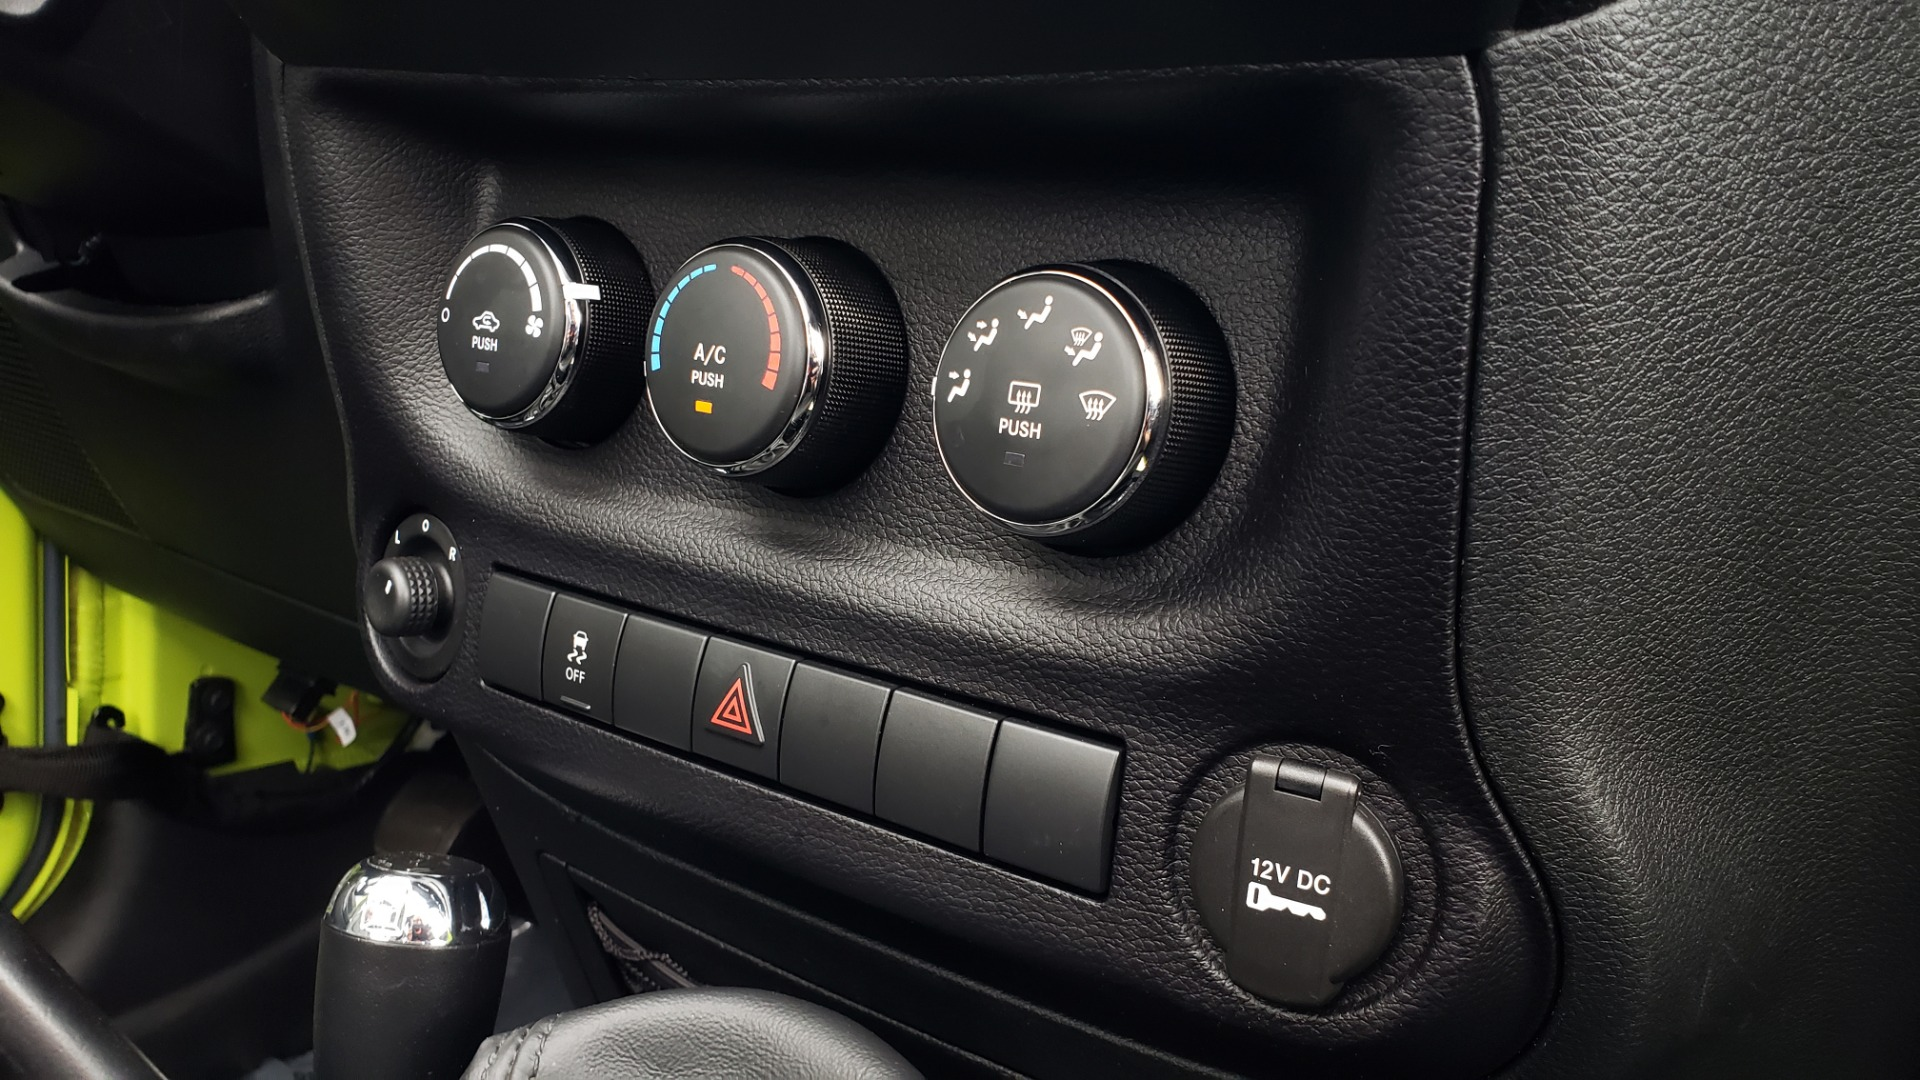 Used 2016 Jeep WRANGLER UNLIMITED SPORT 4X4 / POWER TOP / NAV / HTD STS / REARVIEW for sale $36,999 at Formula Imports in Charlotte NC 28227 74